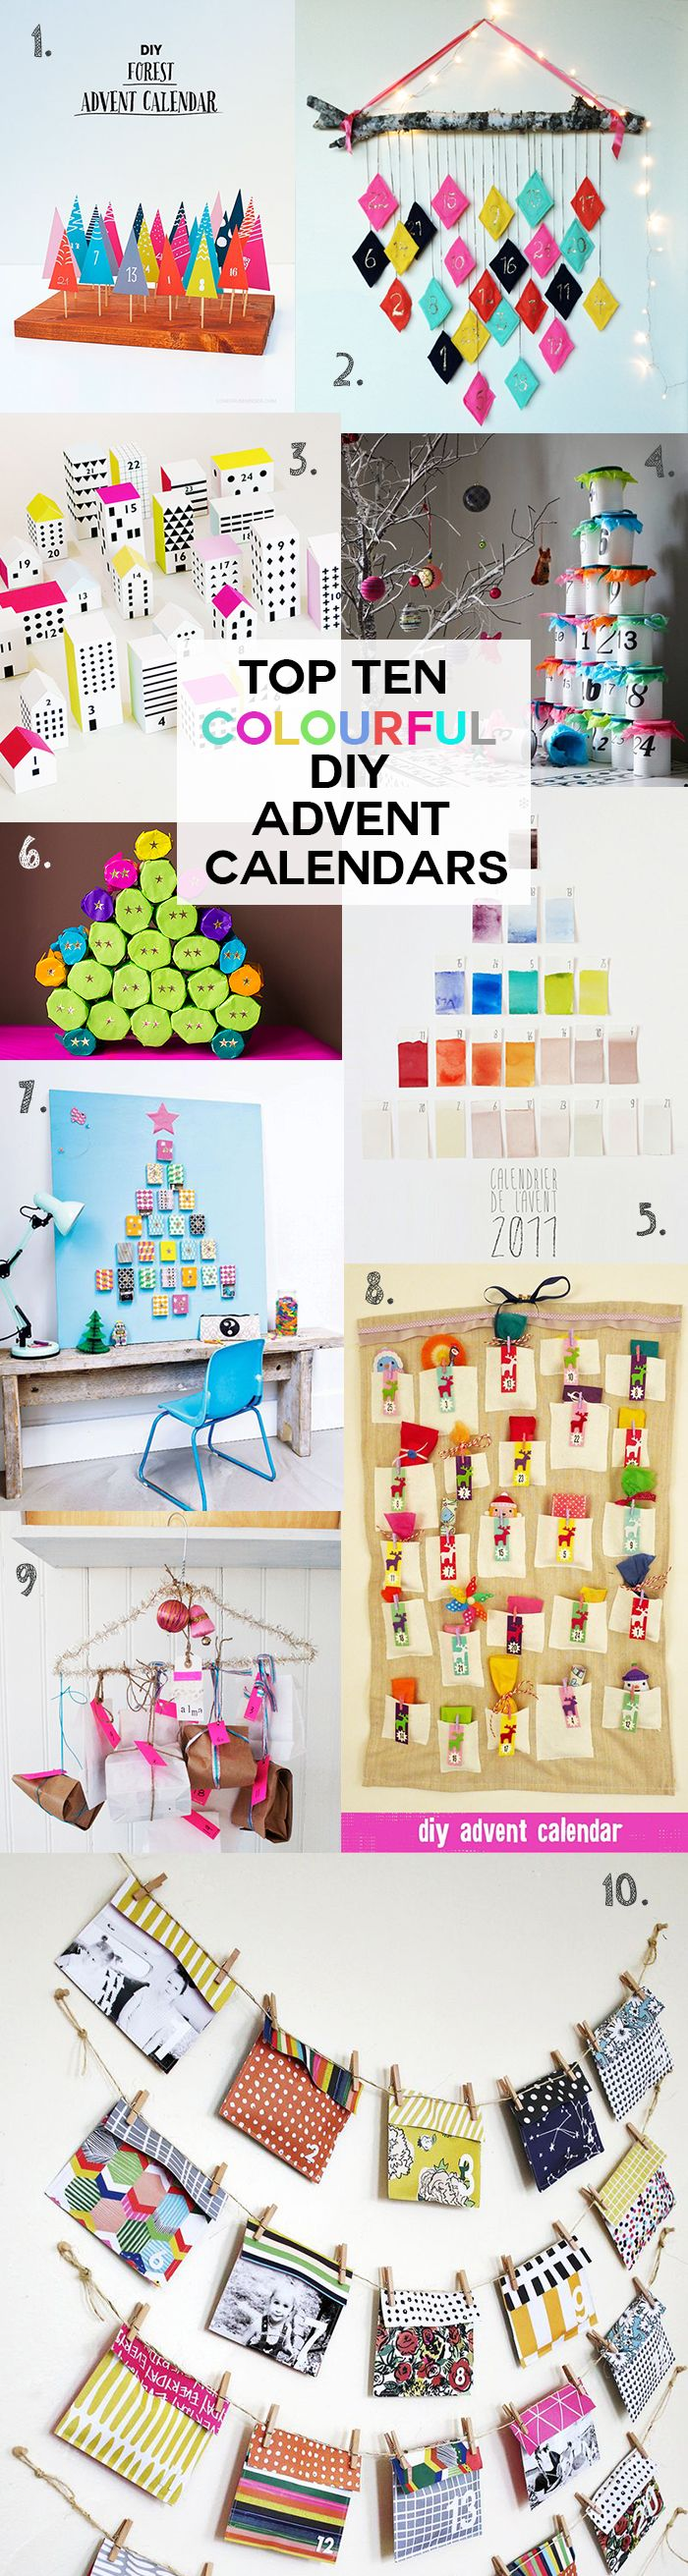 Top Ten DIY Colourful Advent Calendars - Let's Do Something Crafty